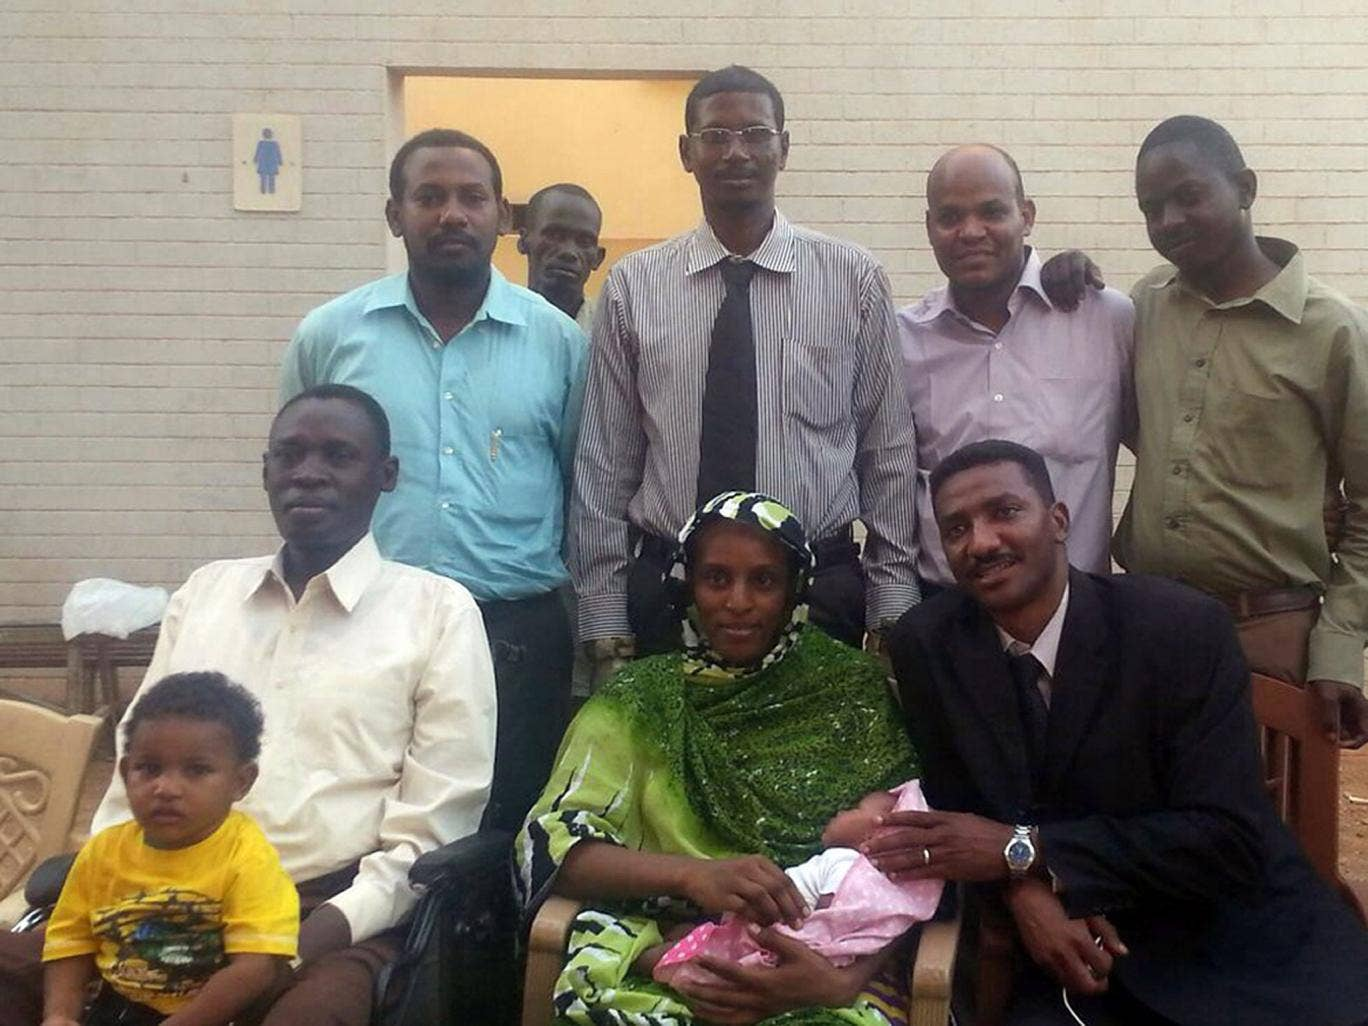 Meriam Ibrahim, her family and her legal team in a photo taken after she was freed on Monday